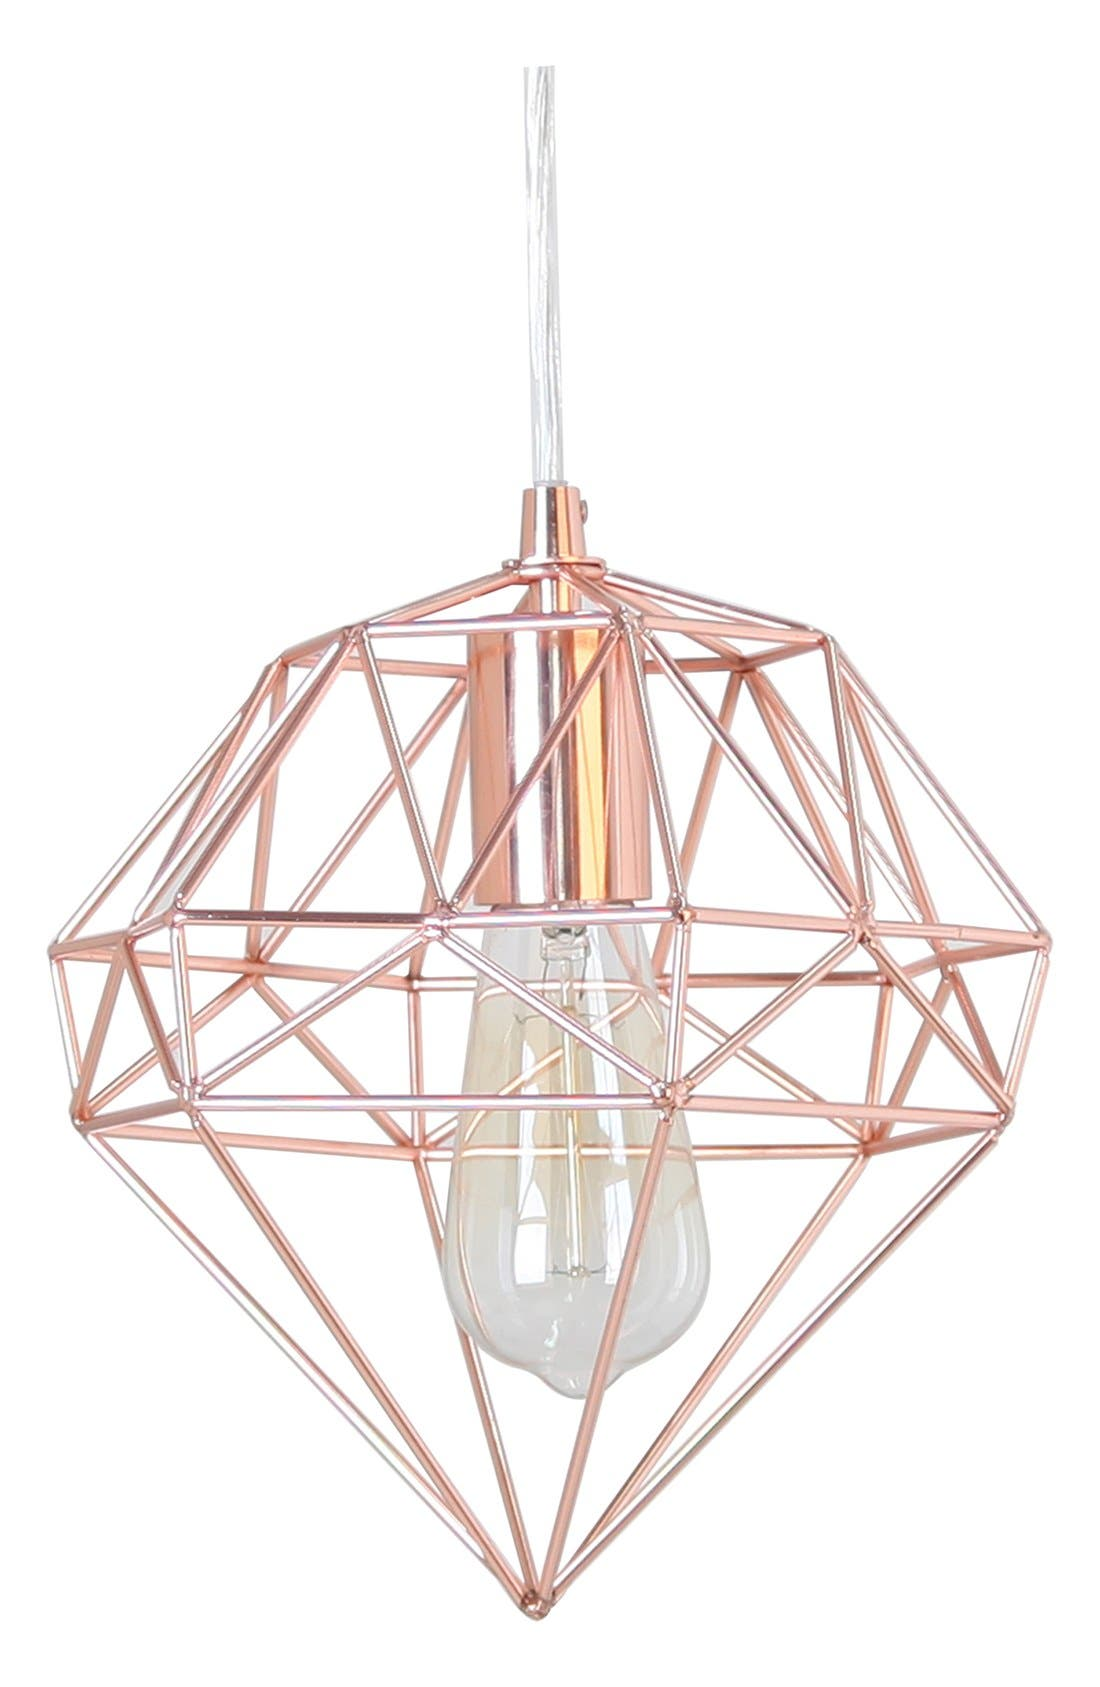 Crystal Art Gallery Metallic Hanging Lamp